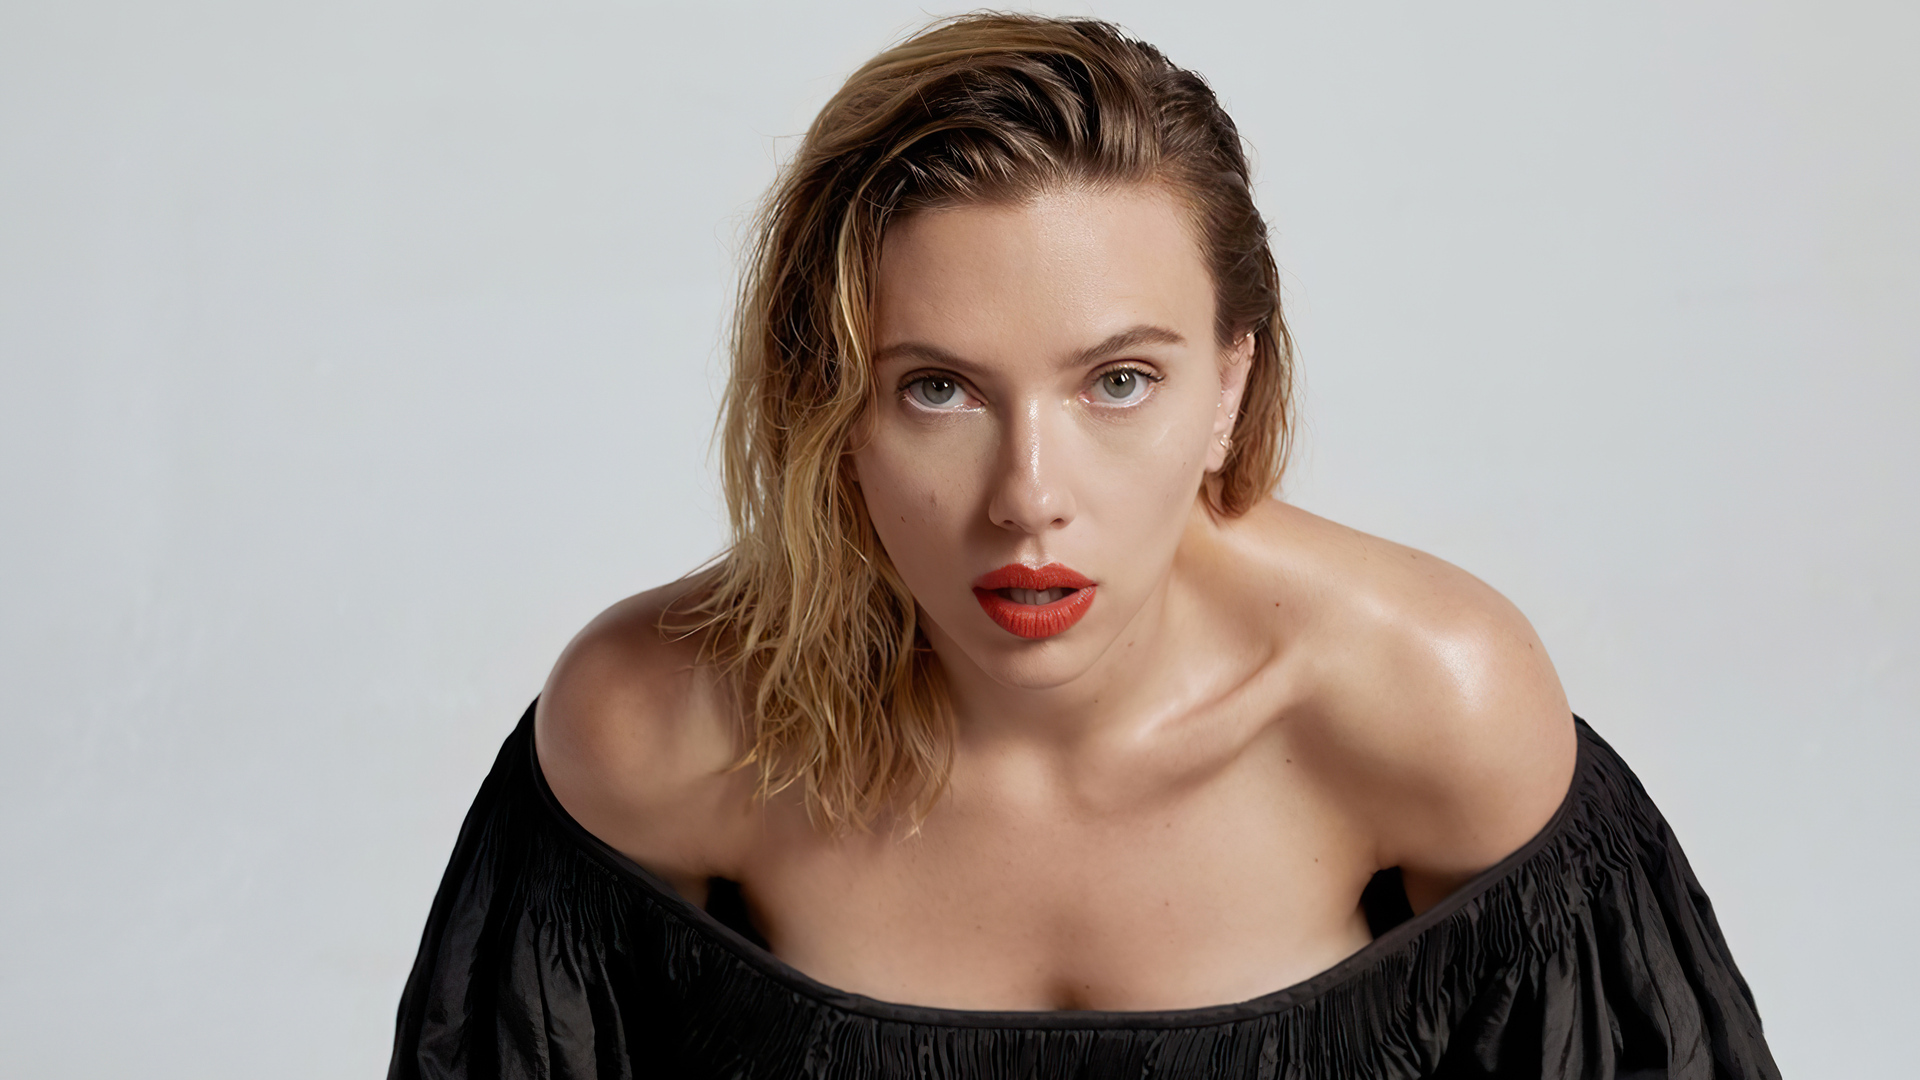 1920x1080 Scarlett Johansson Vanity Fair 2020 Laptop Full HD 1080P HD 4k  Wallpapers, Images, Backgrounds, Photos and Pictures